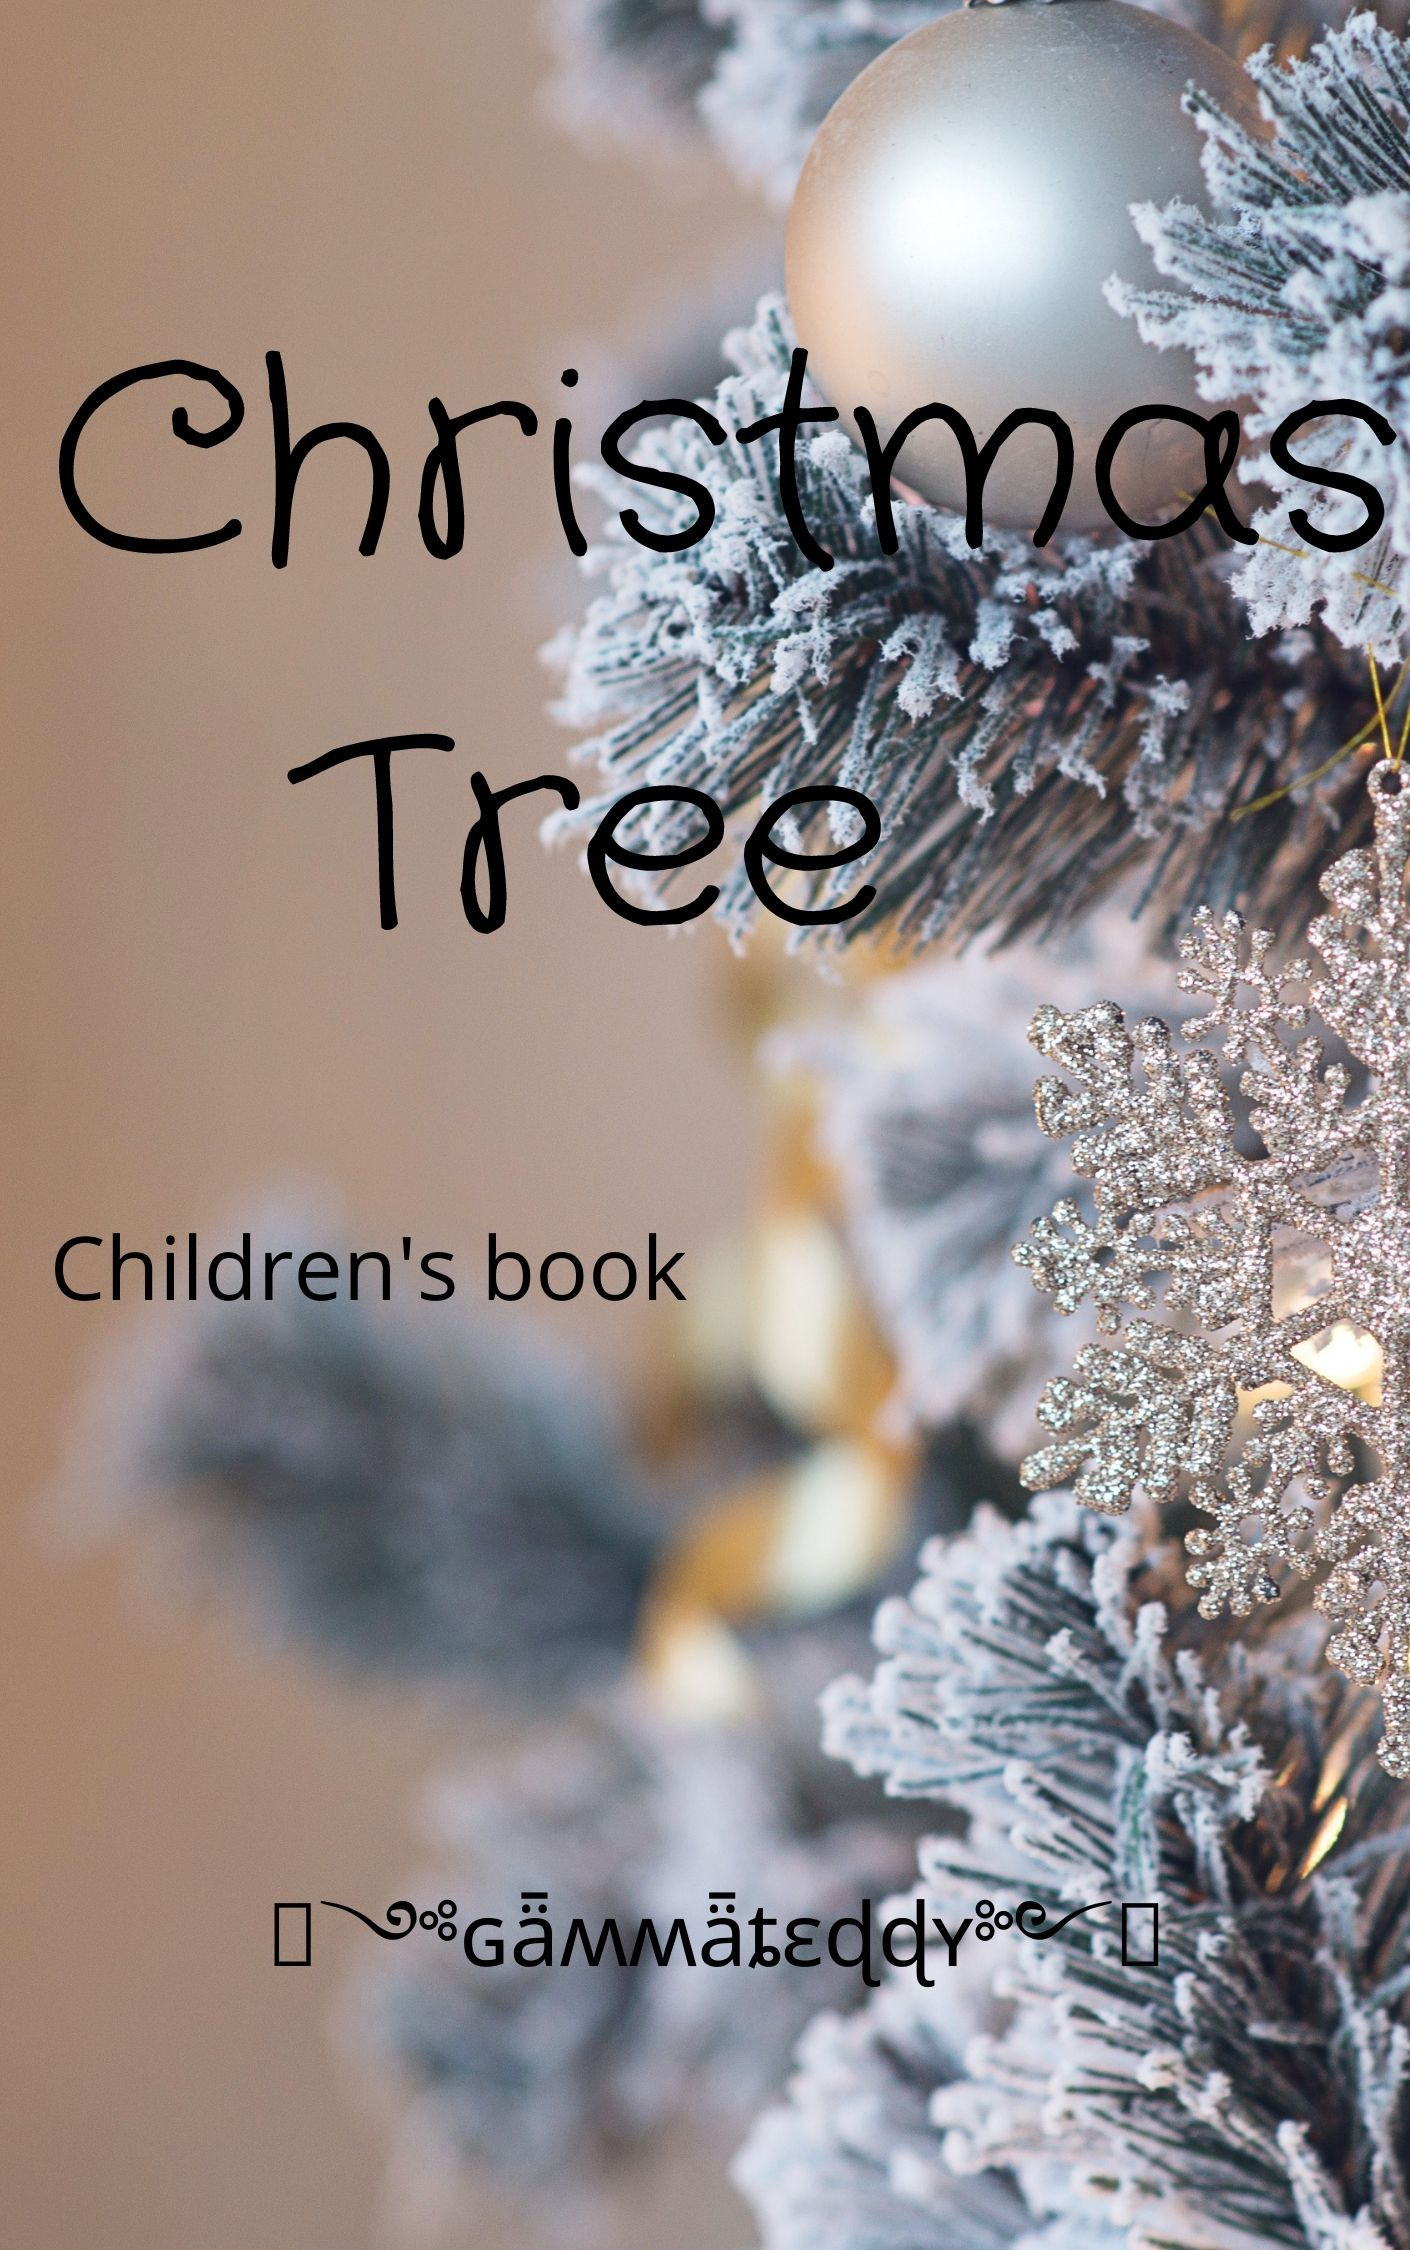 Christmas Factory's Book Image